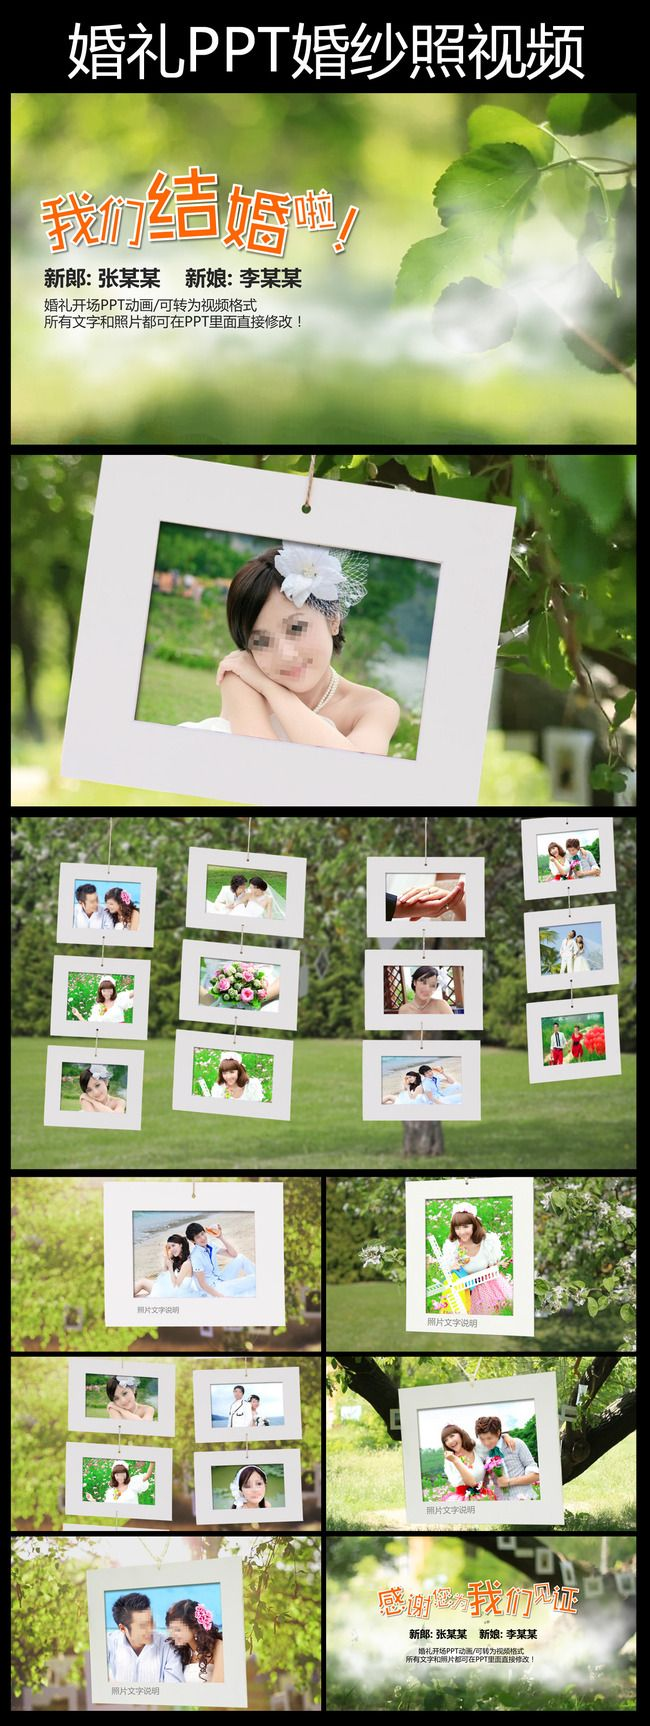 Personality wedding opening ppt templates to get married MV production ppt background picture #PowerPoint##PPT# http://weili.ooopic.com/weili_12274574.html